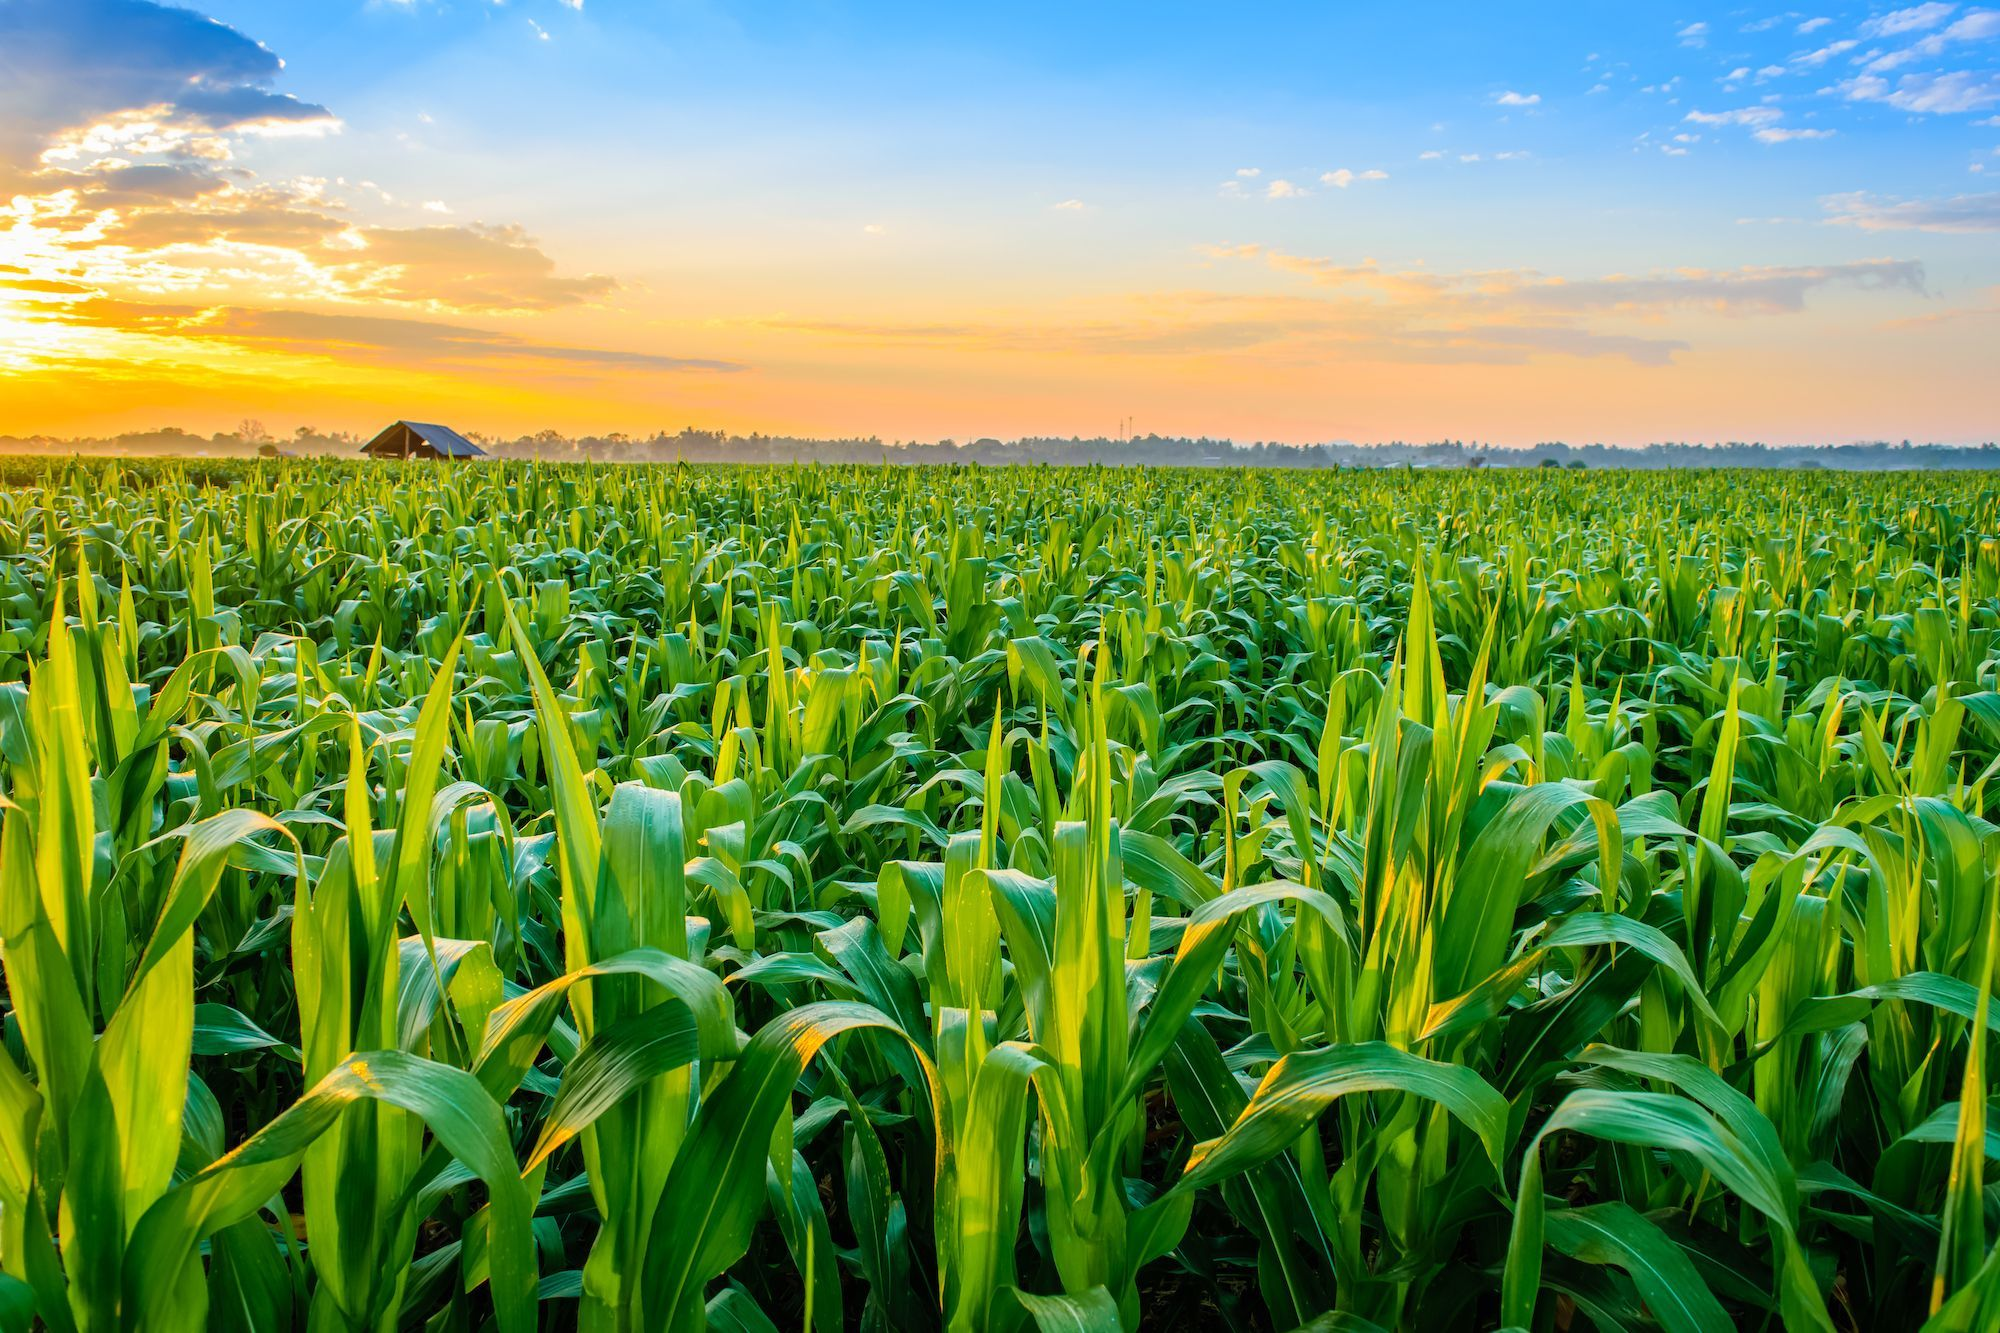 Agriculture sector witnessed 2.77% growth, livestock 3.06% in FY 2020-21